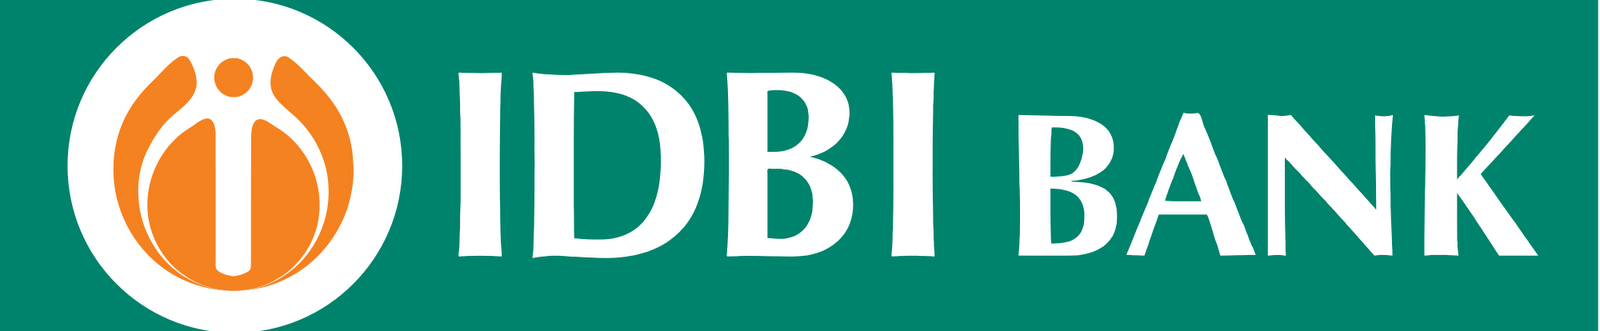 Last date to apply for IDBI Bank Executives